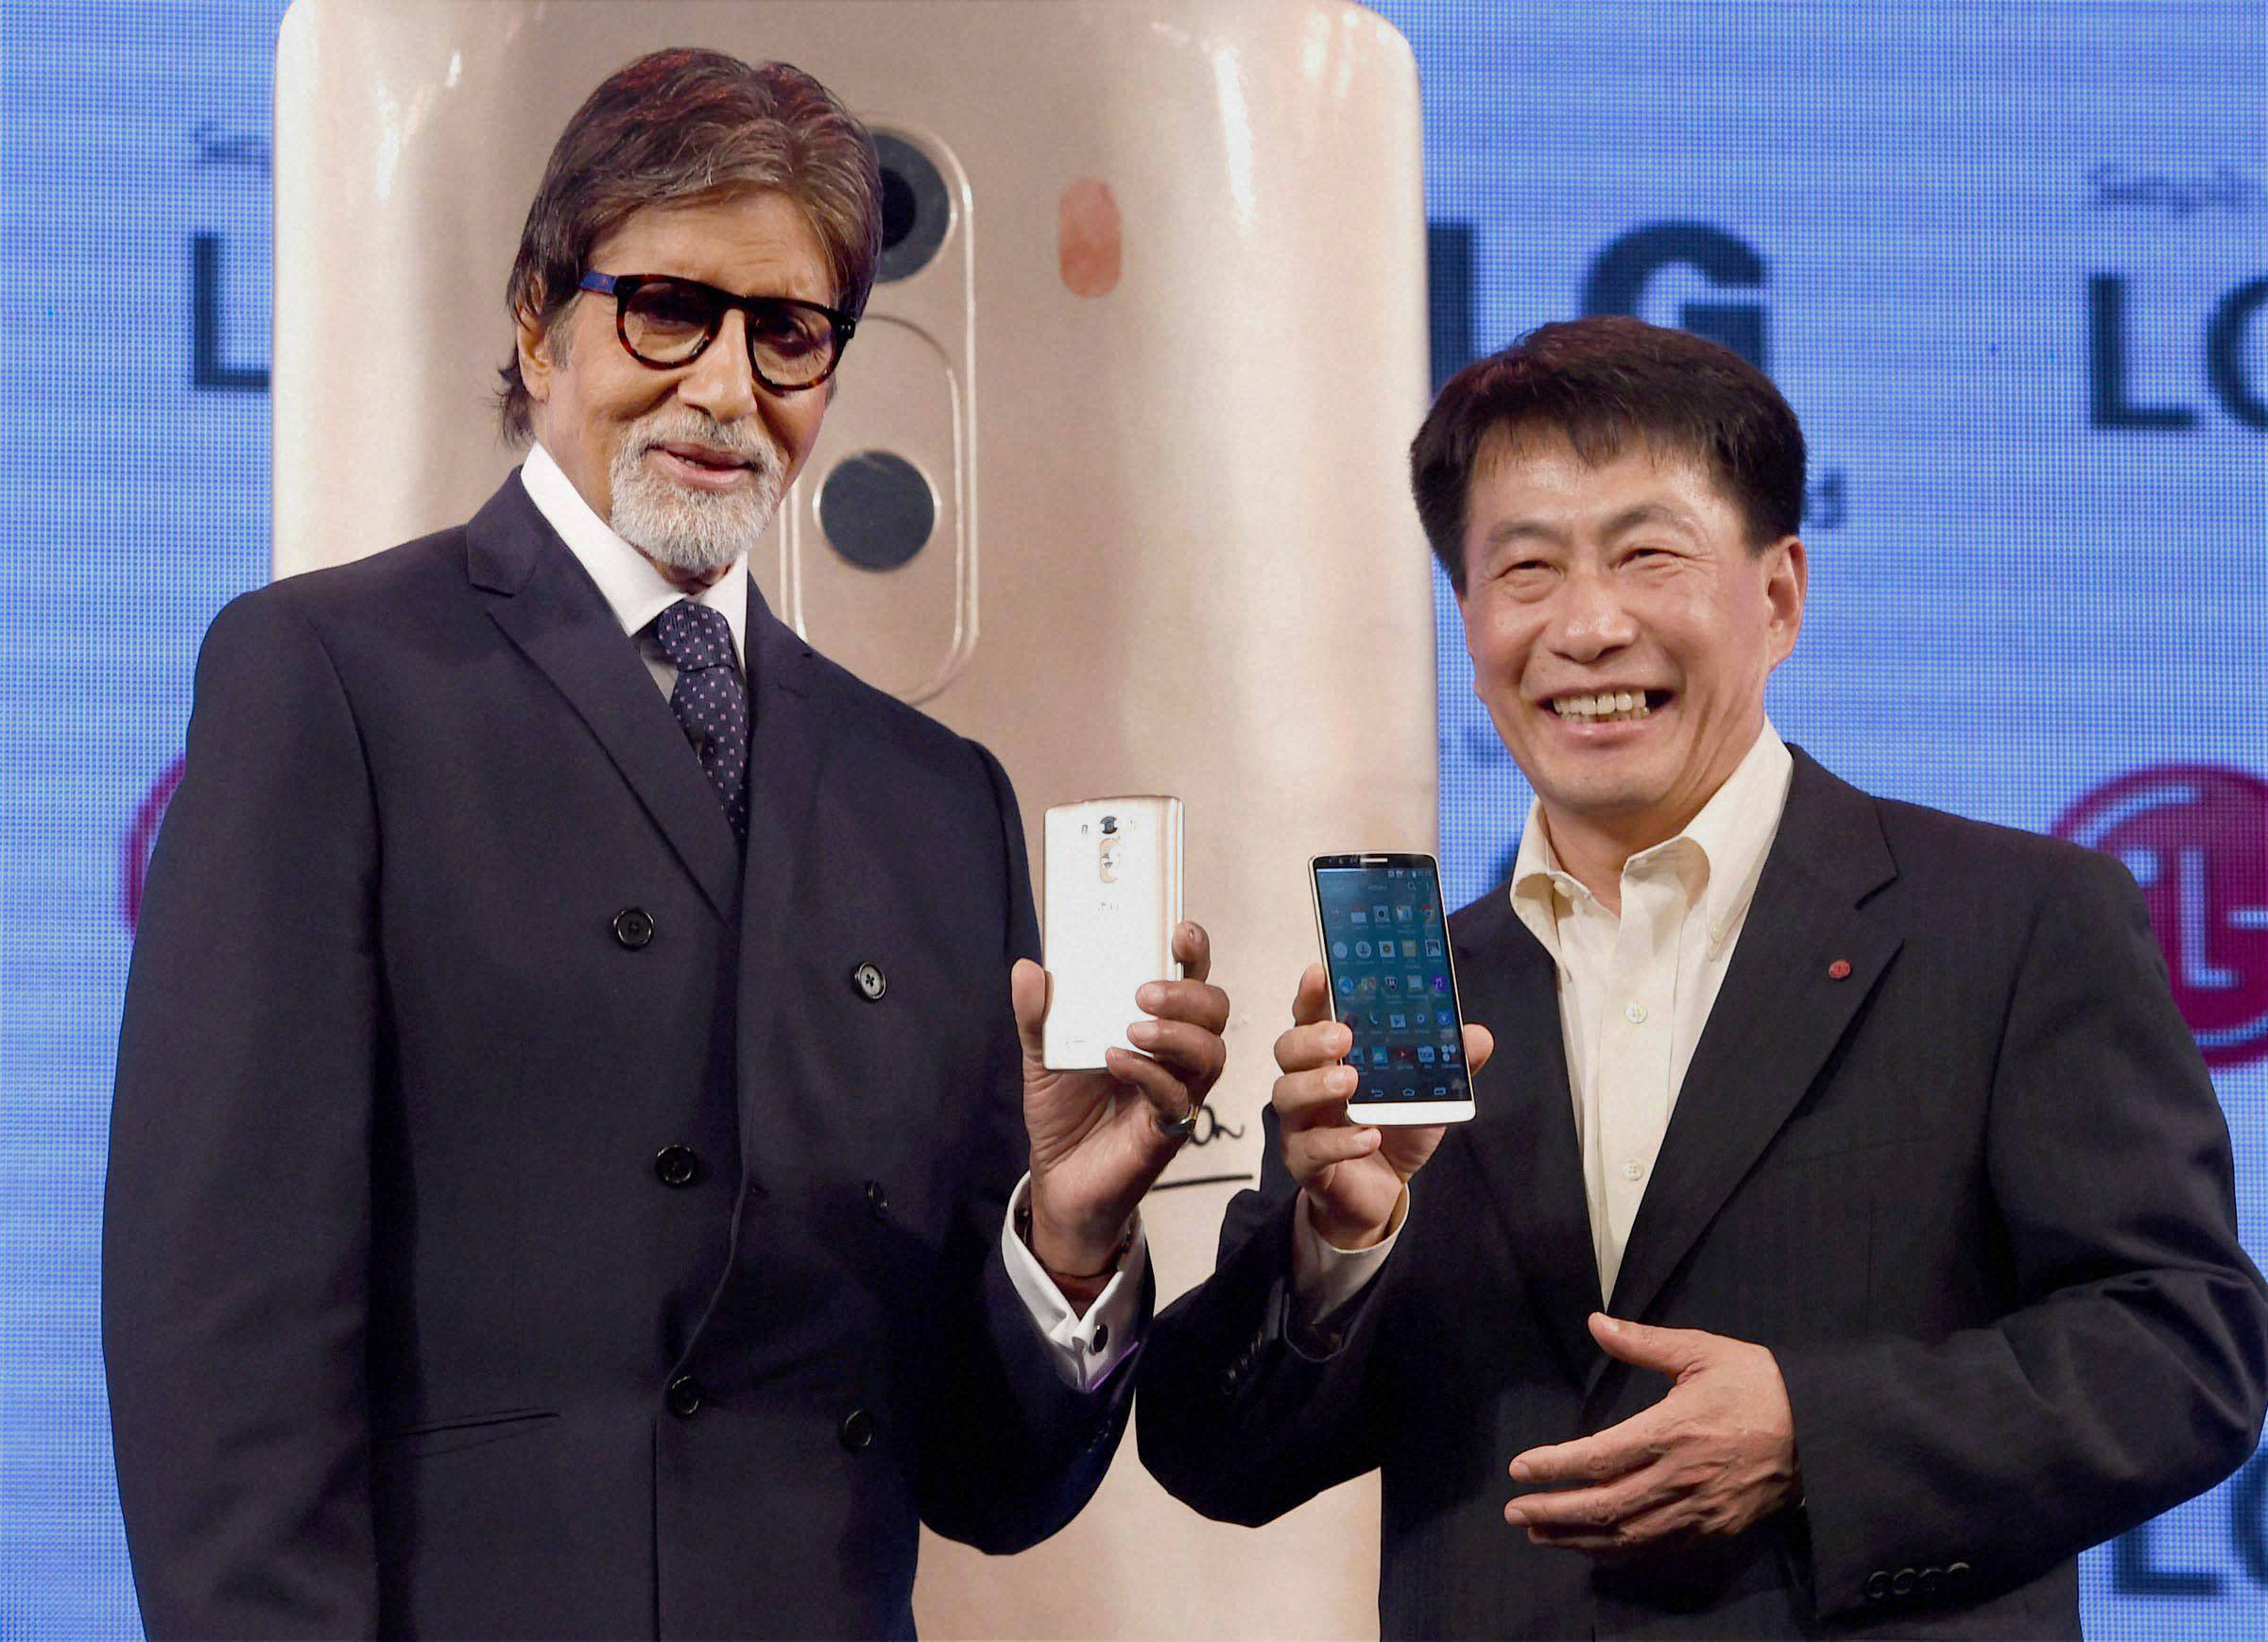 Bollywood actor, Amitabh Bachchan, Soon Kwon, MD, LG Electronics, India, launch, LG G3 Smartphone, Mumbai